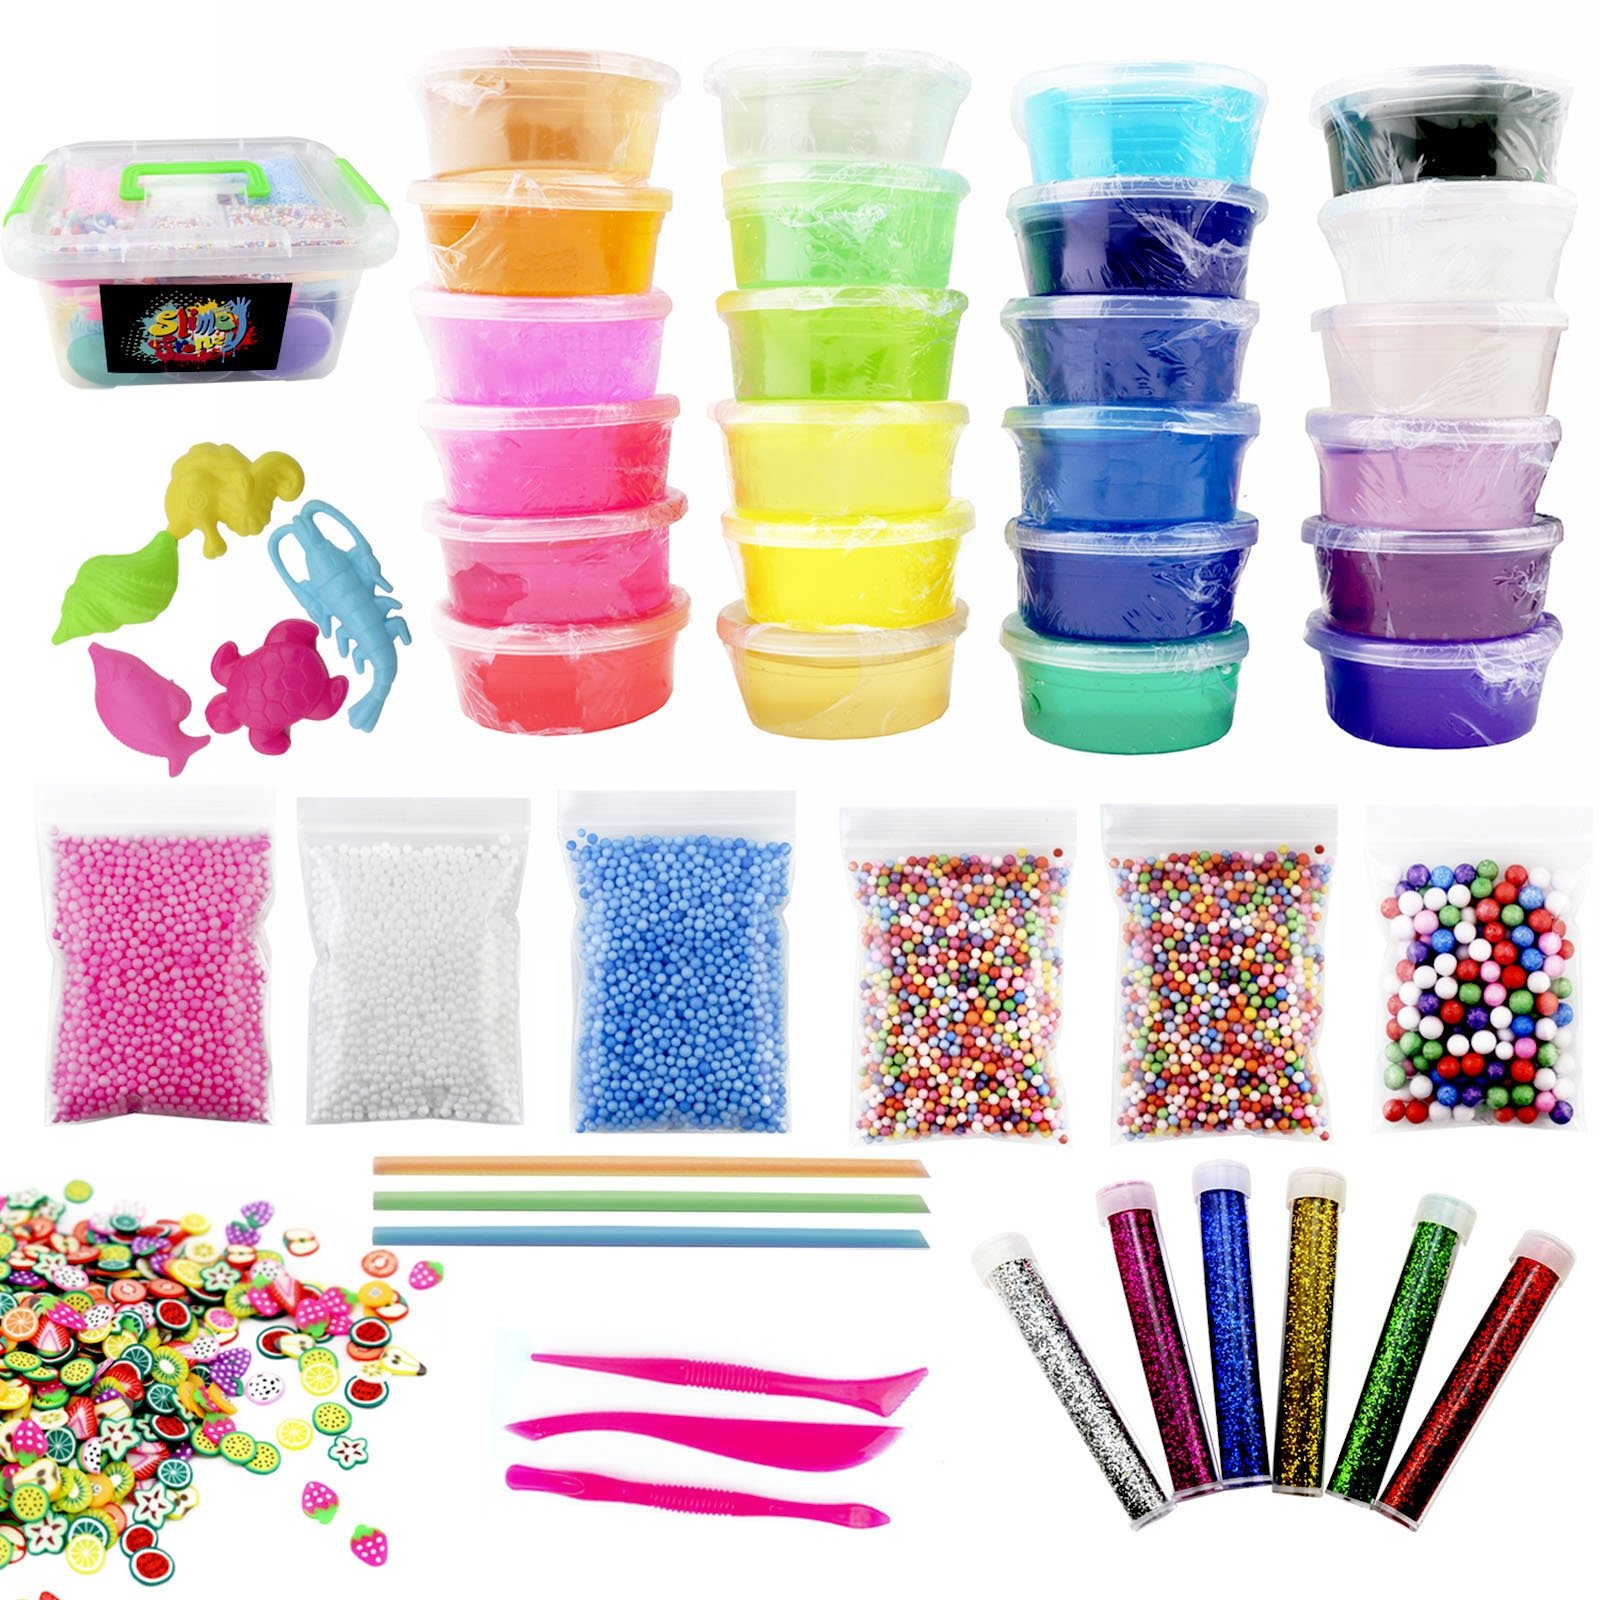 48 Piece Slime Kit for Making DIY Crystal Clear Rainbow Unicorn Slime 24 Colors Slime 6 Pack Foam Beads 5 Animal Molds Fruit Slices and Glitter Accessories for Boys and Girls for an Ultimate Slime Kit